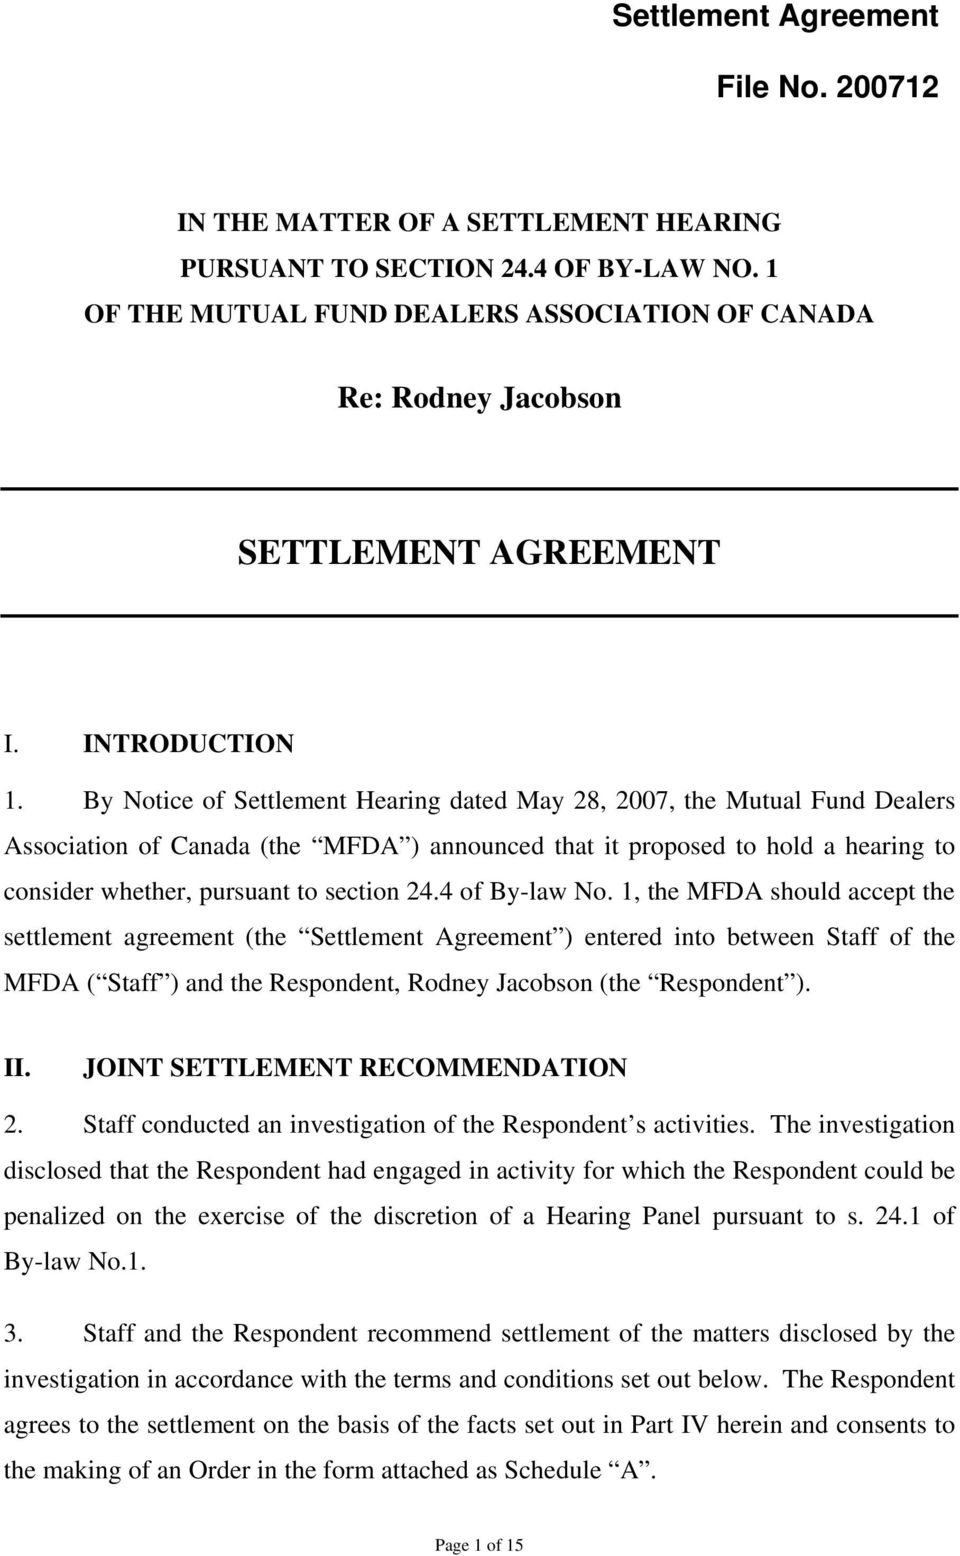 By Notice of Settlement Hearing dated May 28, 2007, the Mutual Fund Dealers Association of Canada (the MFDA ) announced that it proposed to hold a hearing to consider whether, pursuant to section 24.